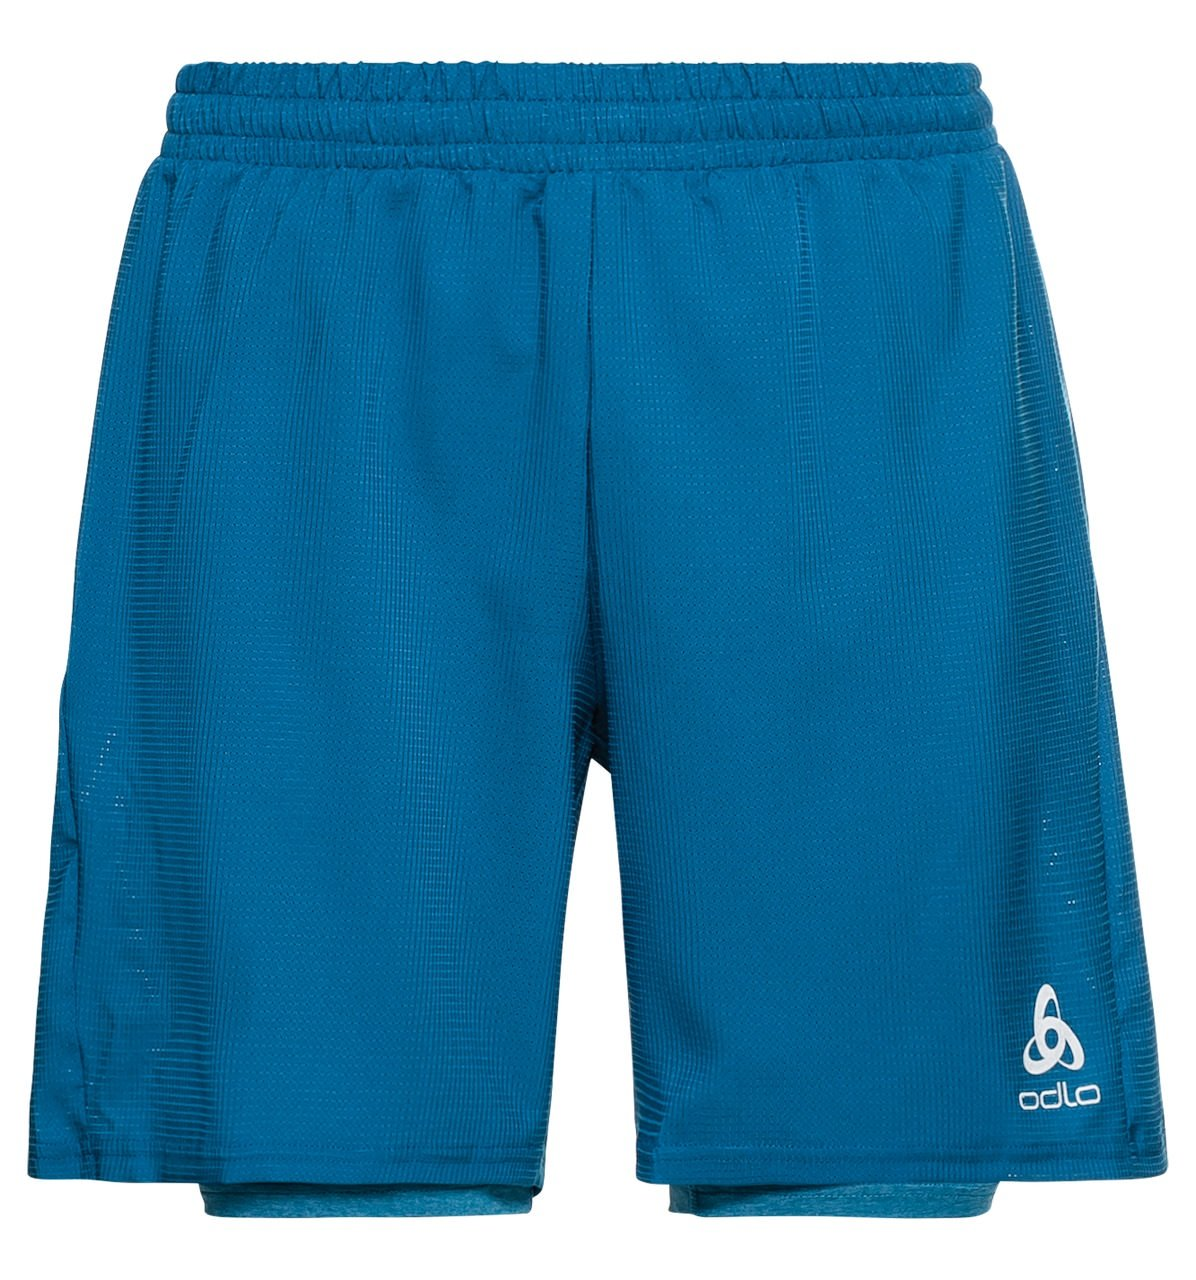 Run Easy 2-in-1 Shorts Ms_322592_20805_A